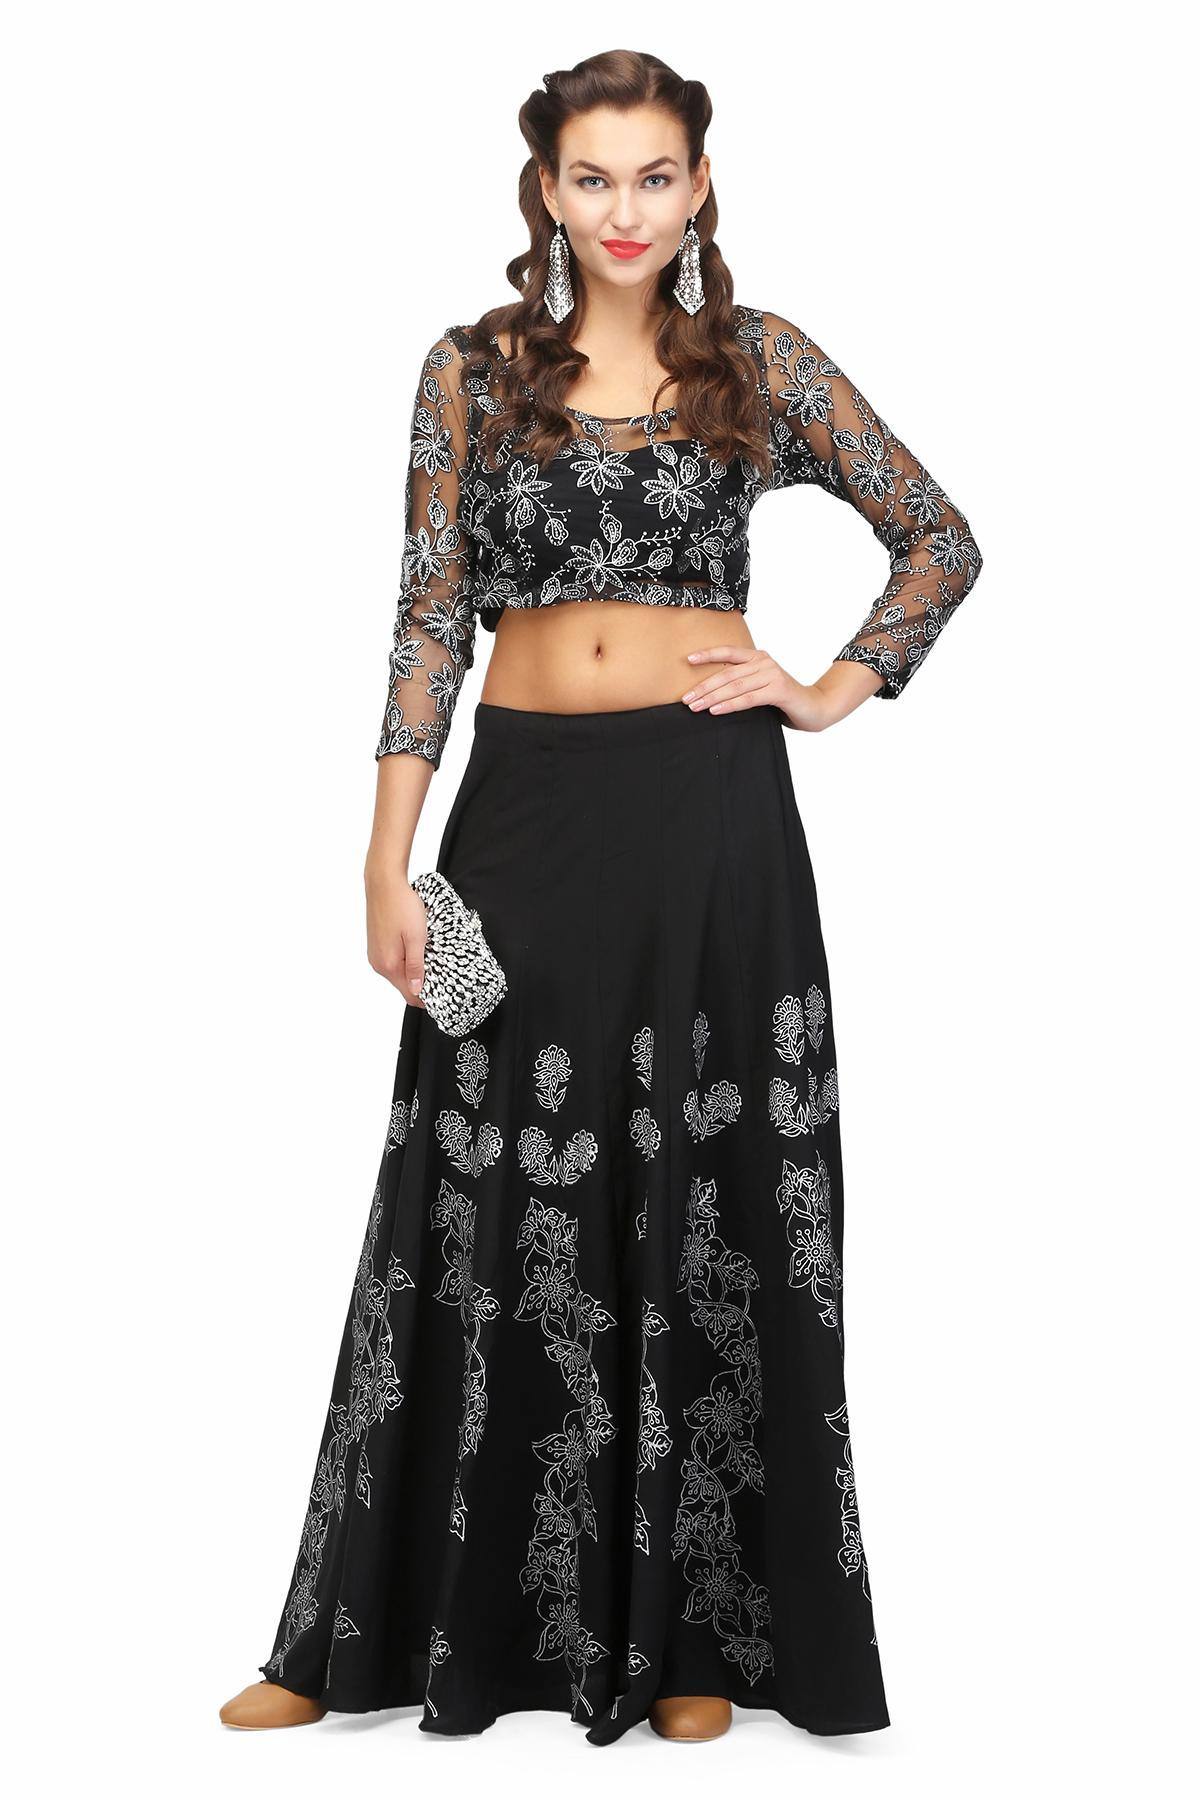 c0046ff01b6f6 Aaina by Aditi ethnic Indo Western Black   White Crop Top Skirt Black  ethnic-crop ...